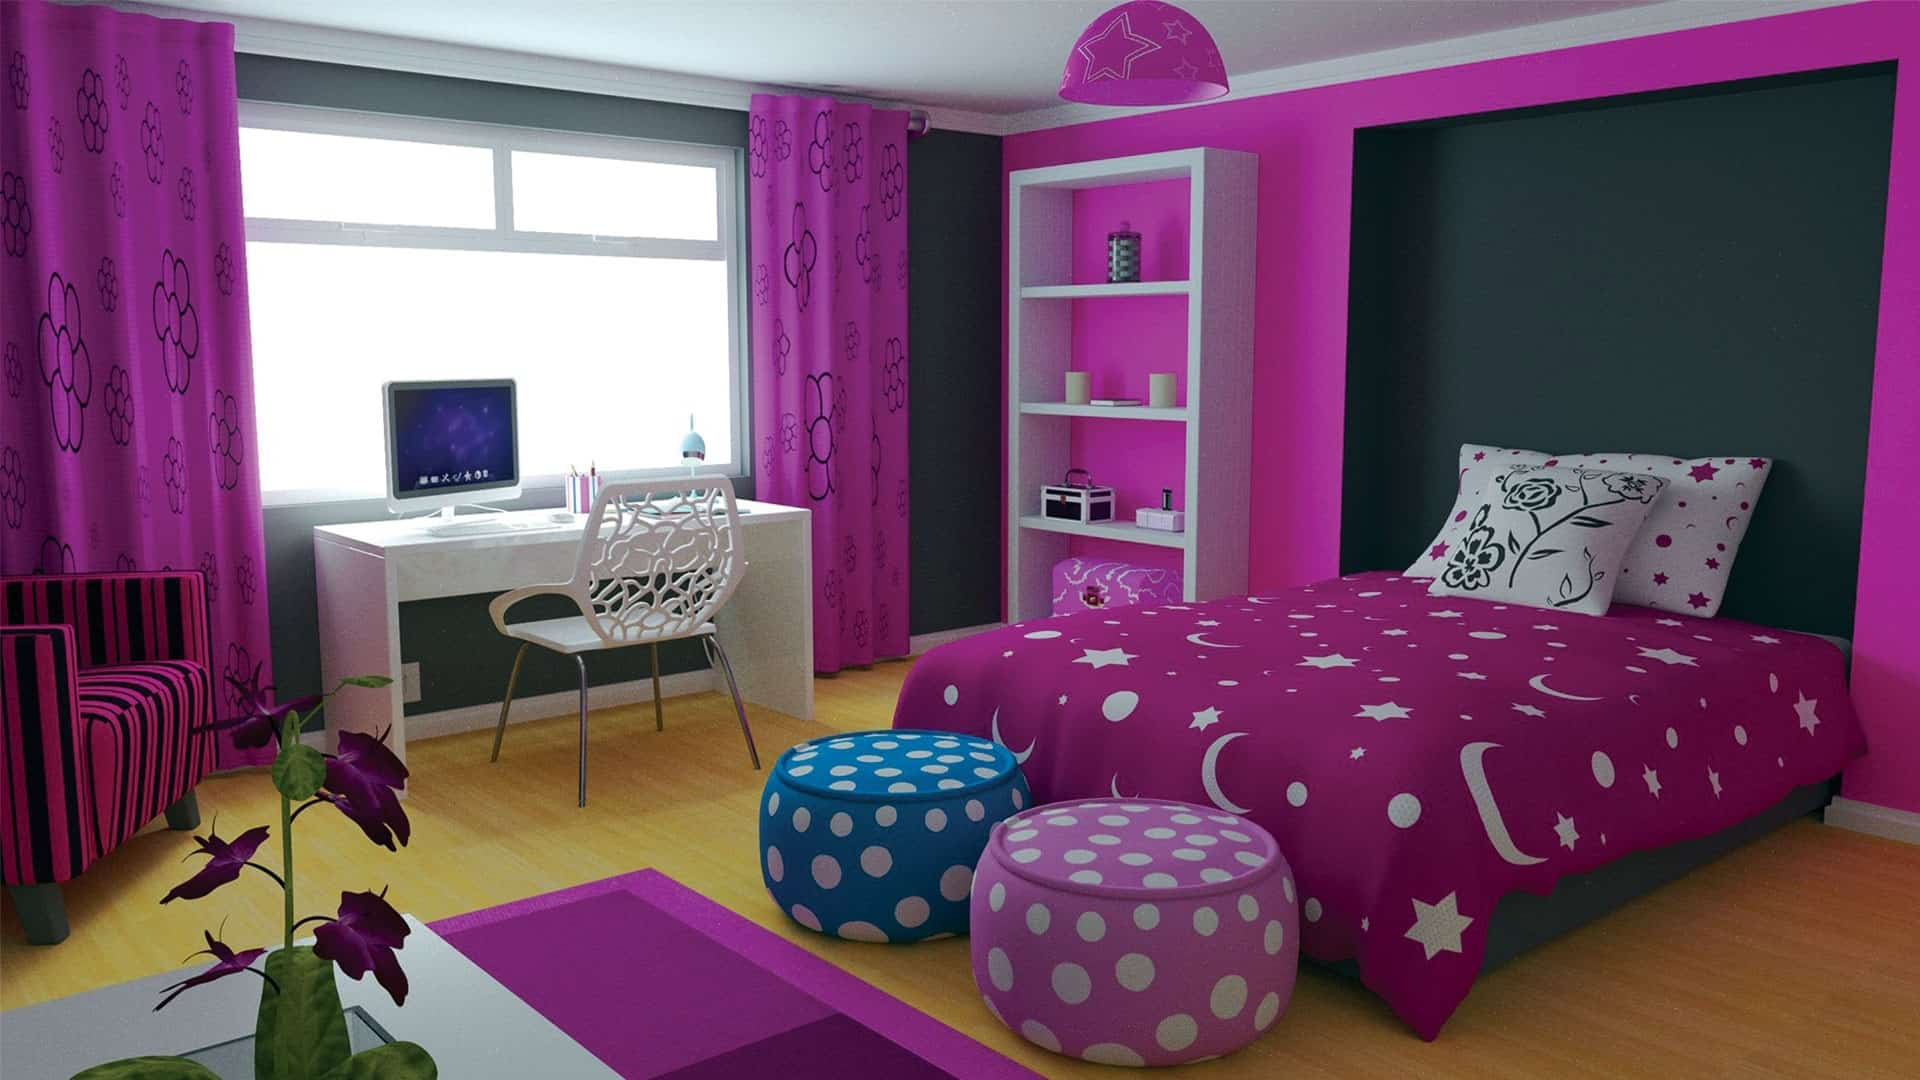 Home decor trends 2017 purple teen room for Bedroom ideas for teen girls